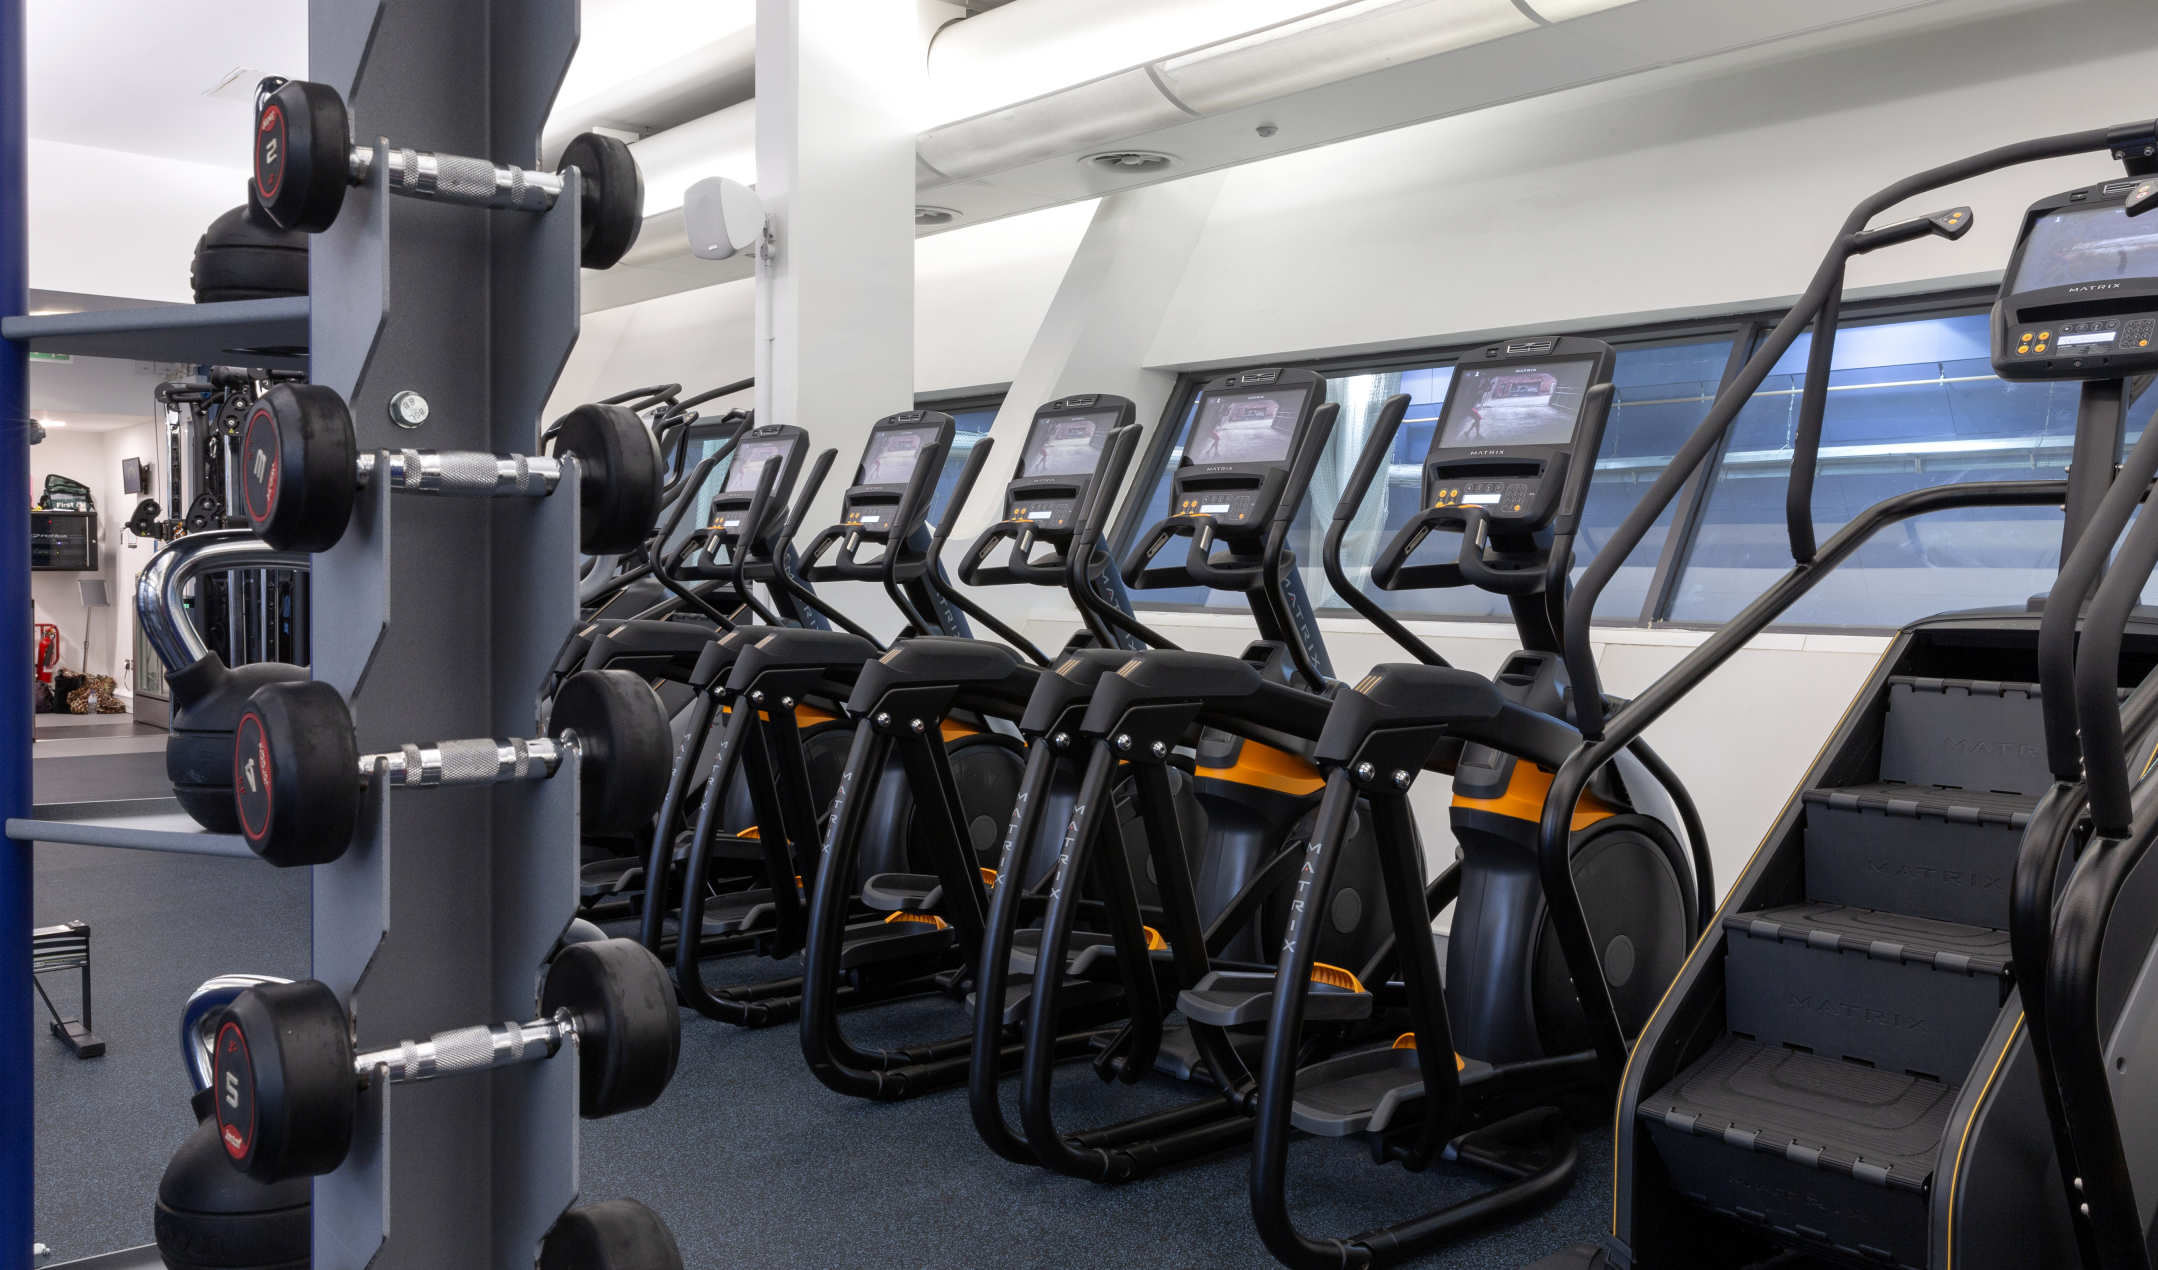 Fully equipped gym for use by summer accommodation guests